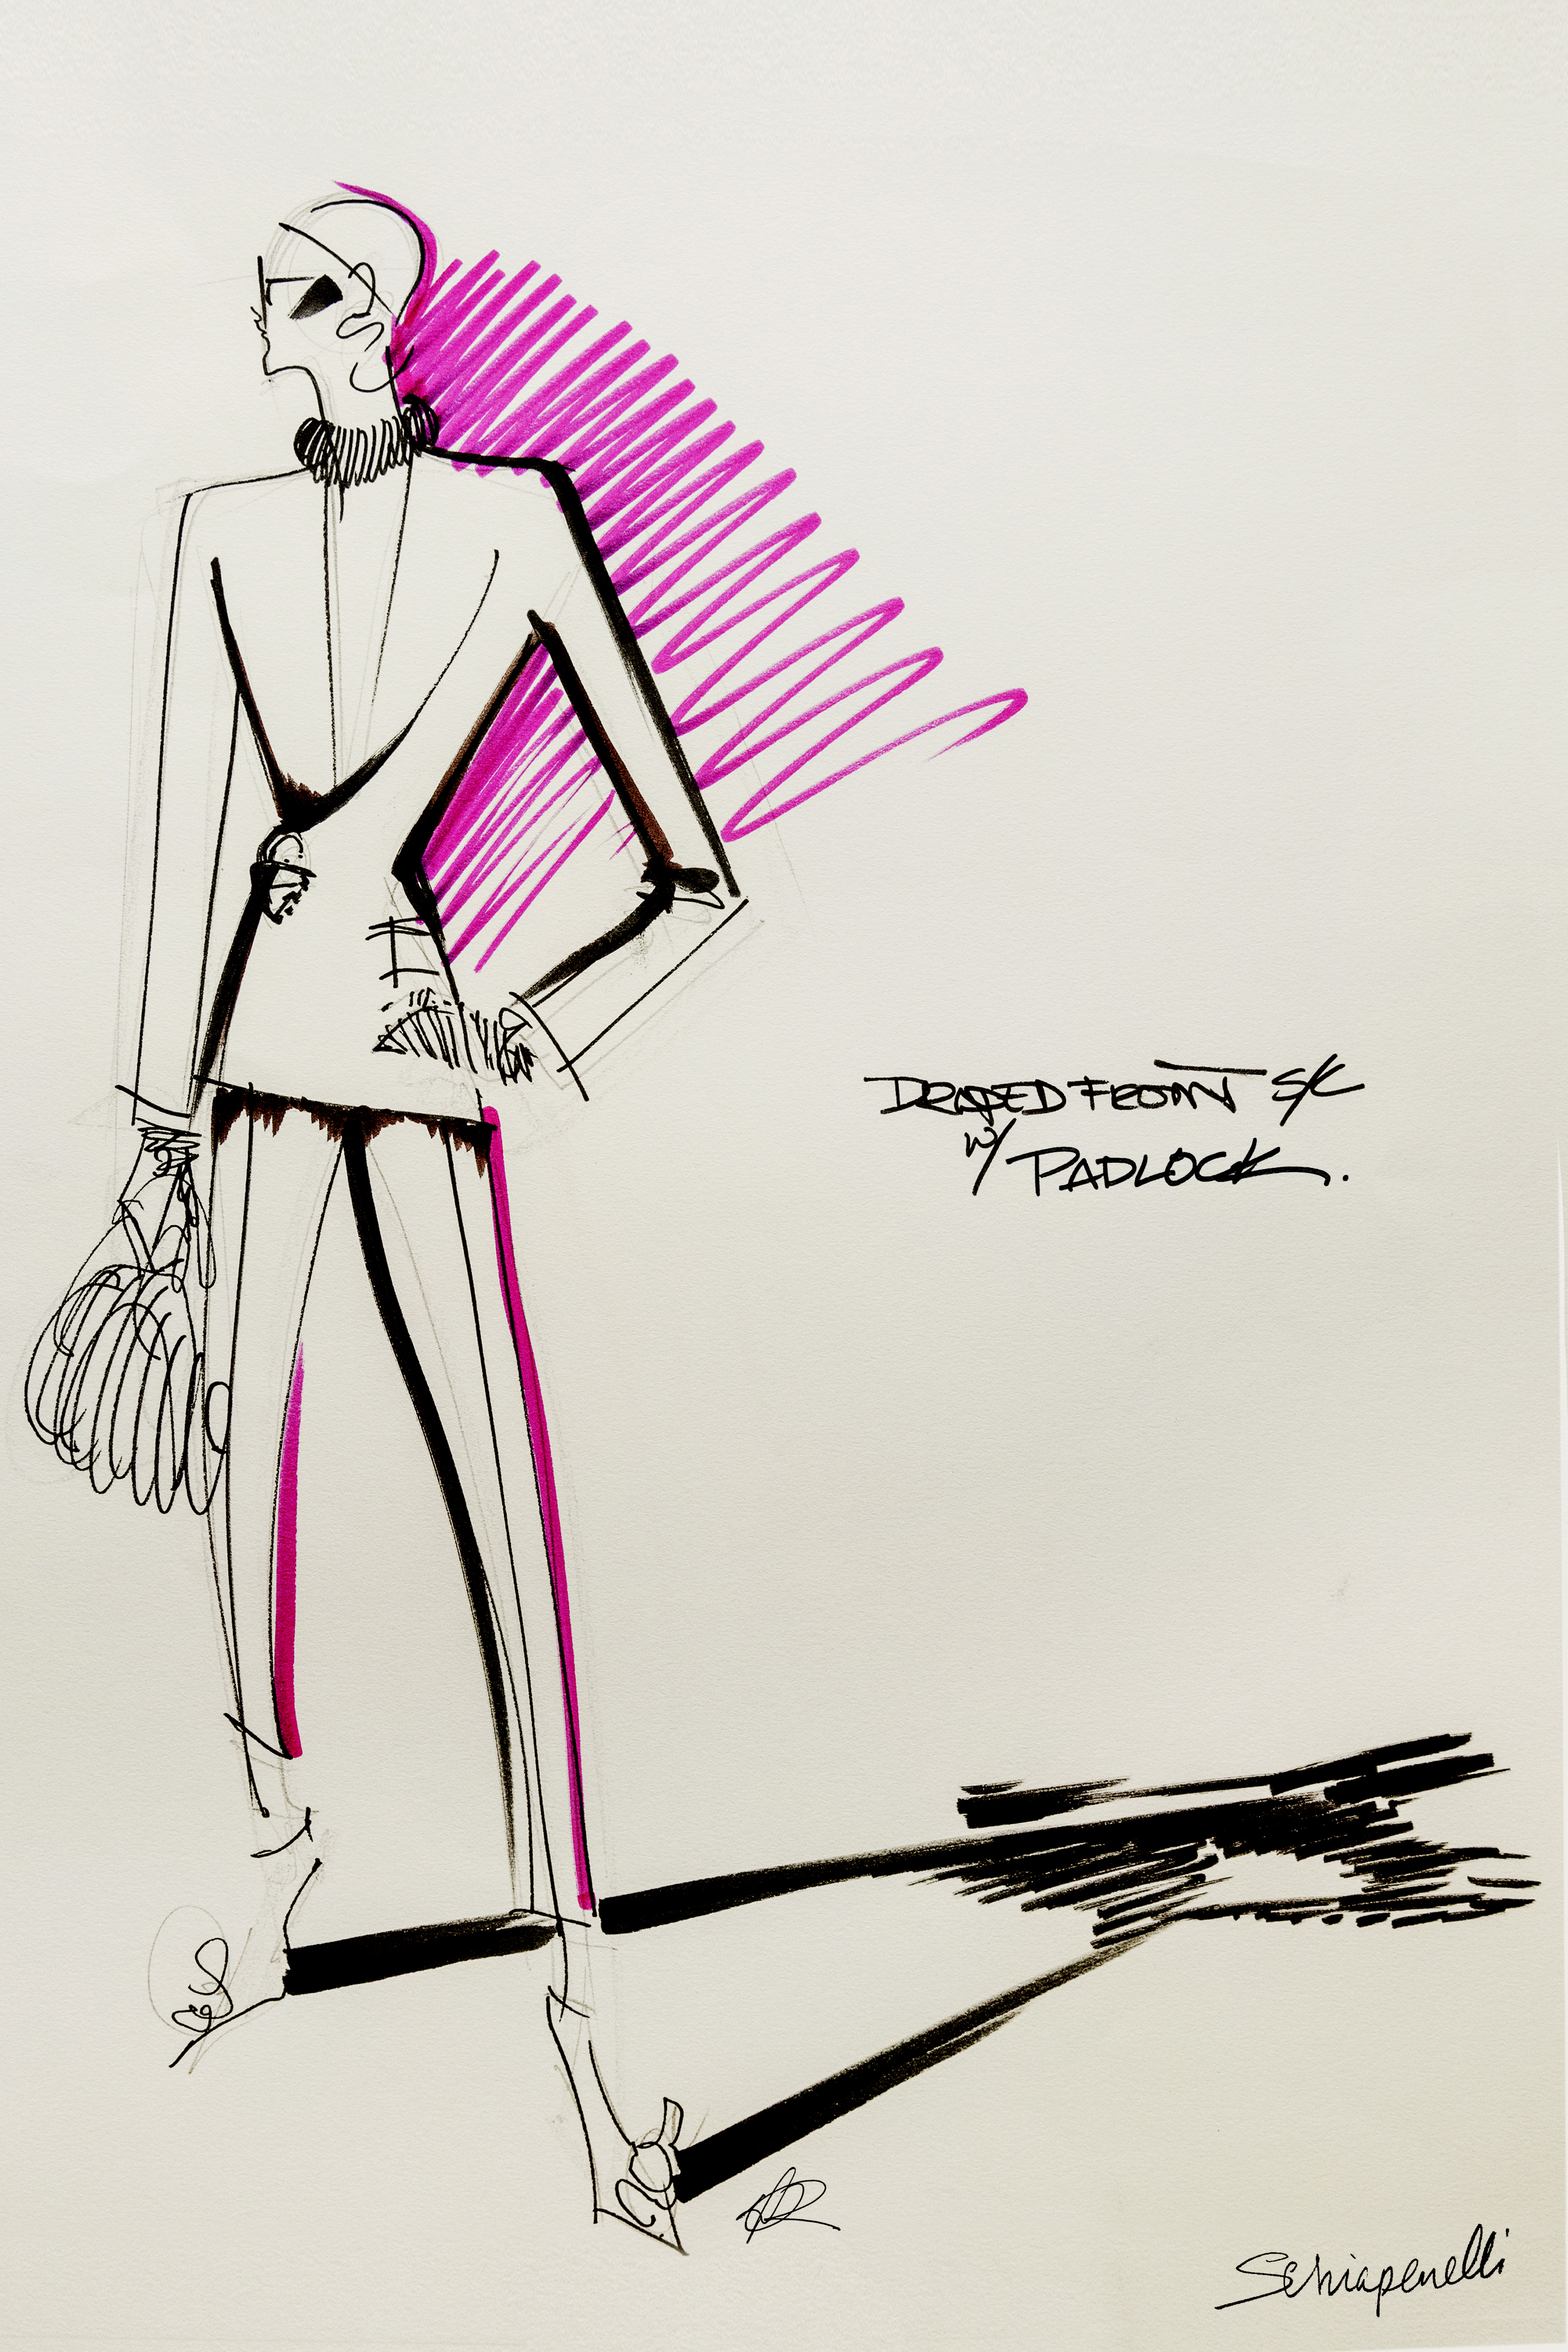 A sketch from Schiaparelli Fall 2020 Couture collection